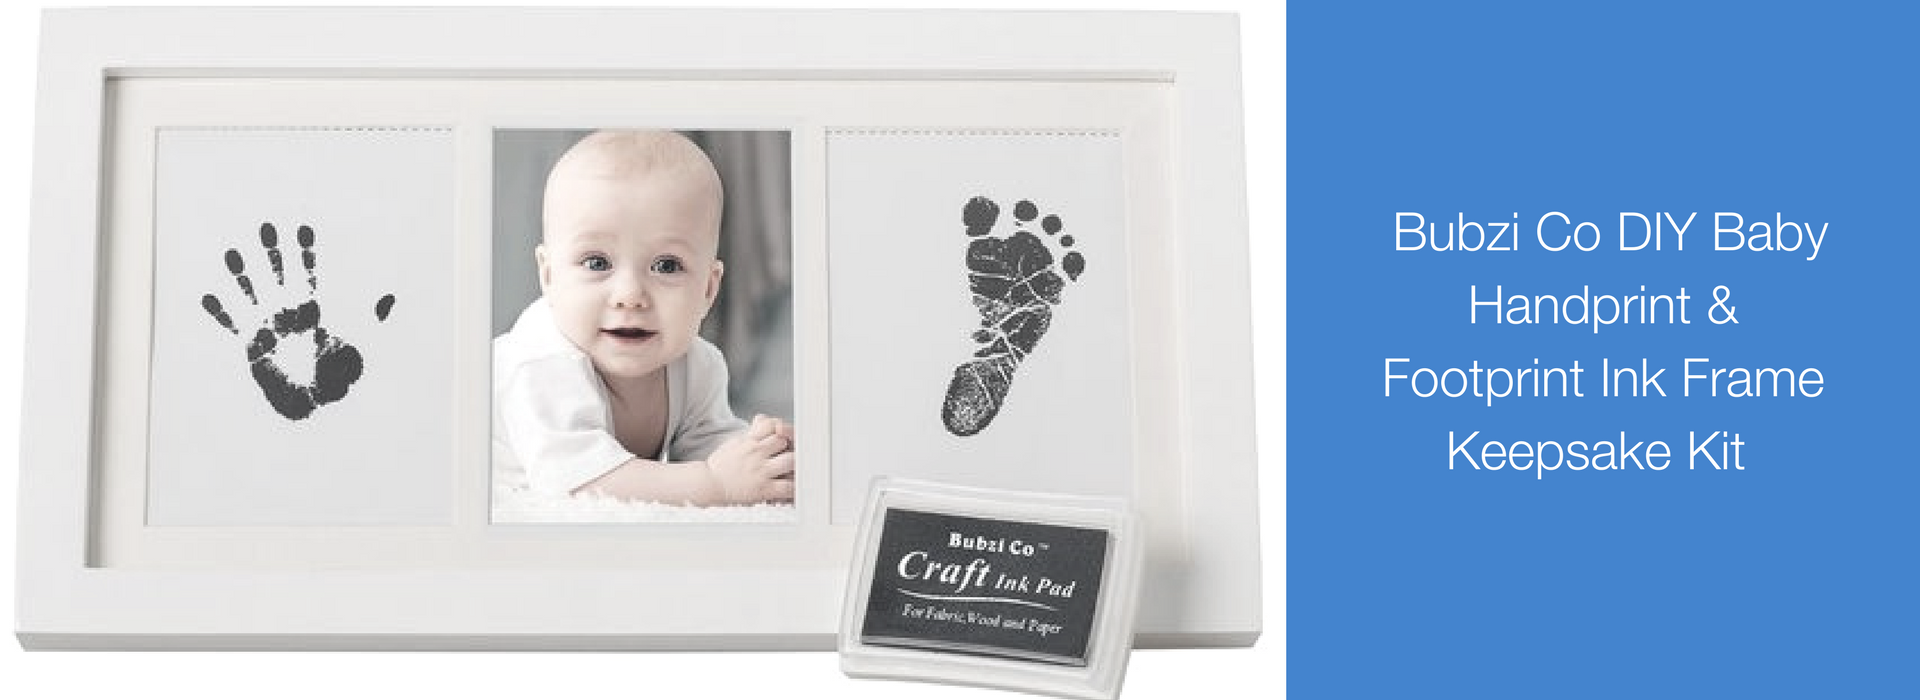 There's so many ways you can use your baby's hand and foot prints to create fun & lasting keepsake gifts for friends and family. Whether you create a baby shower invitation or a DIY Christmas ornament, it's the perfect way to remember your newborn before their little hands & feet grow too big. If you'd rather buy a kit to save you time & money consider a DIY kit like Bubzi Co.'s Baby Handprint and Footprint Ink Frame Keepsake Kit. #BabyShowerGifts #NewBornPortraits #BabyCrafts #BabyArtPrint